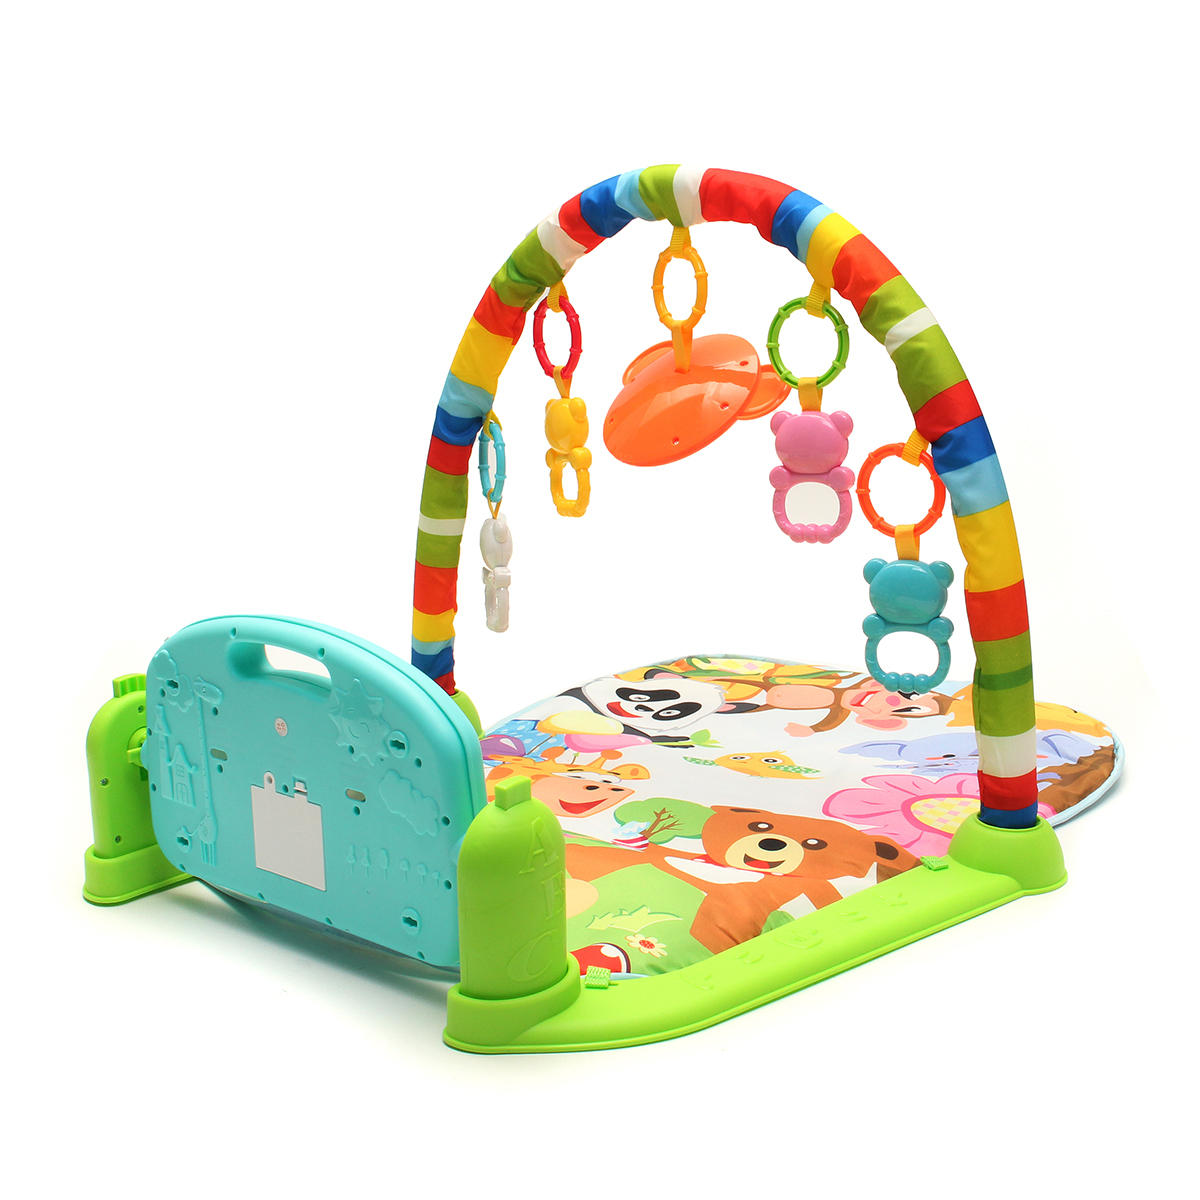 Foot Play Piano Musical Lullaby Baby Activity Playmat Gym Toy Soft Baby Play Mat - 2